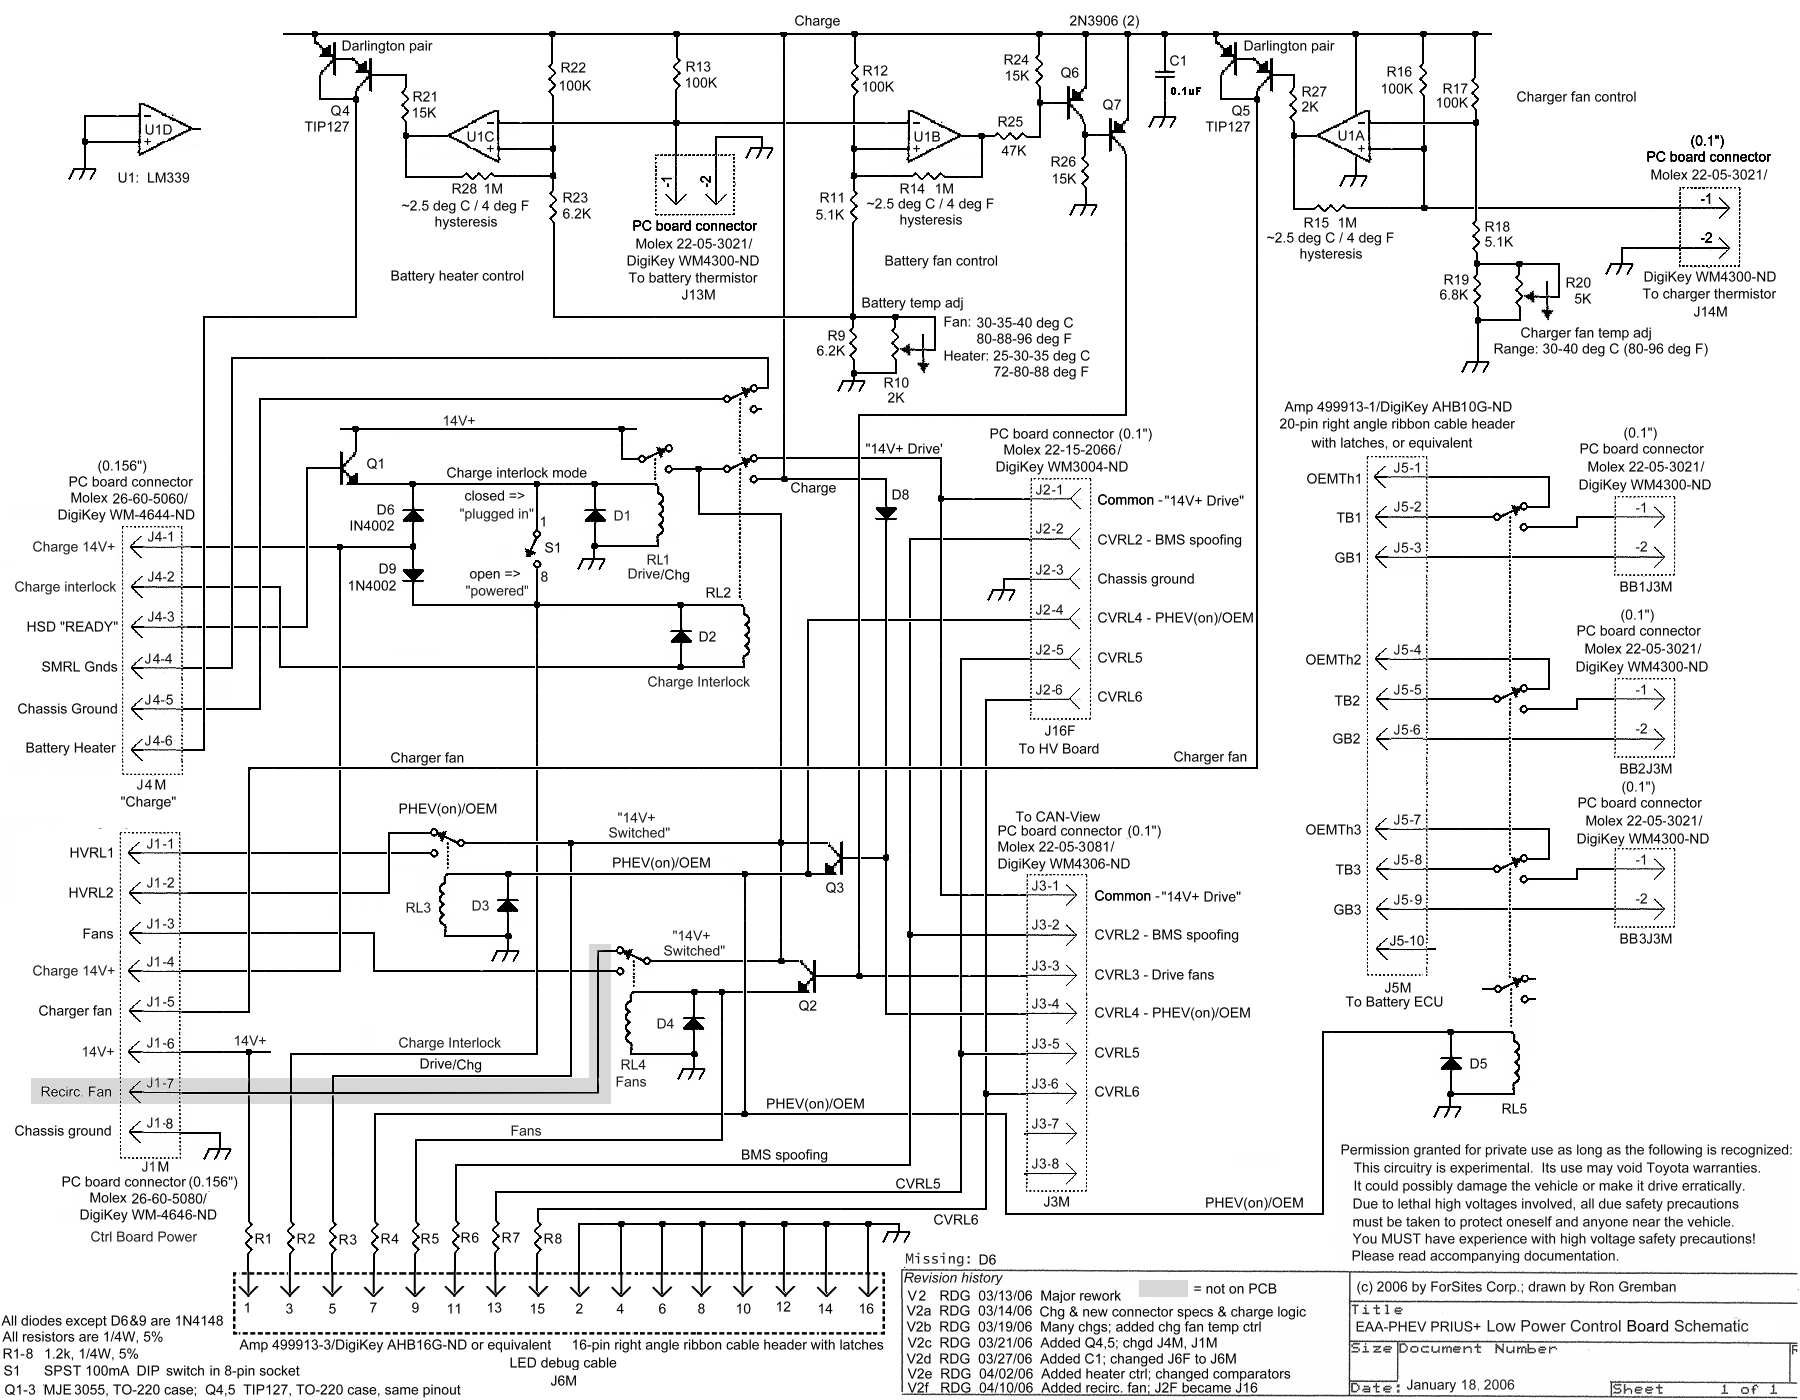 Template:PriusPlus Schematics - My wiki on control plan, control relay, control transformer, control manual, control circuit, control wiring, control board, control switch,